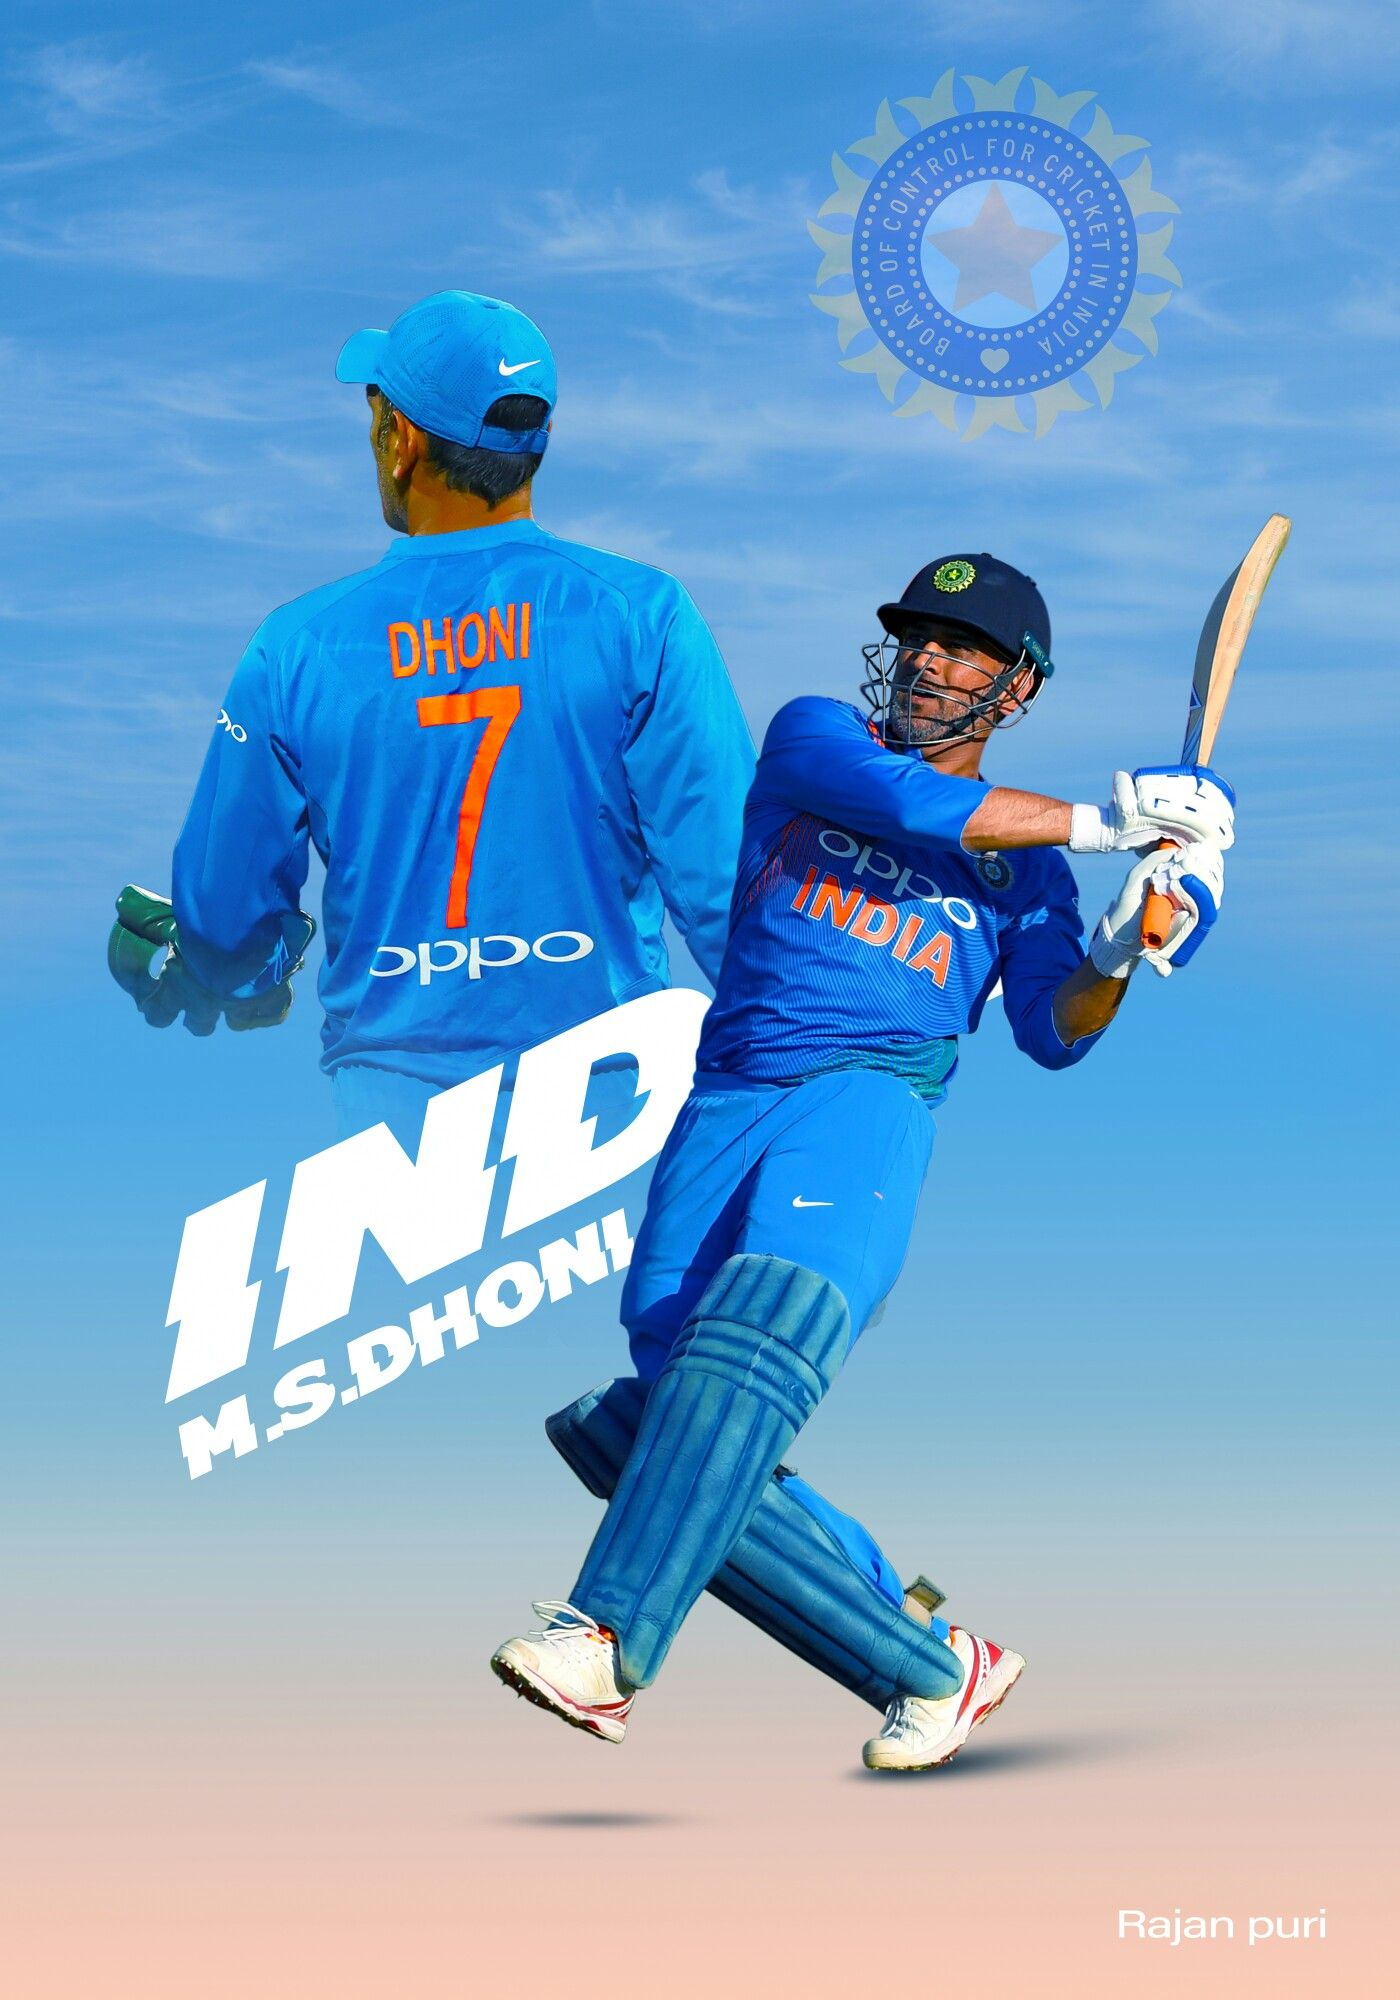 Ms Dhoni Dhoni Wallpapers Ms Dhoni Wallpapers Ms Dhoni Photos